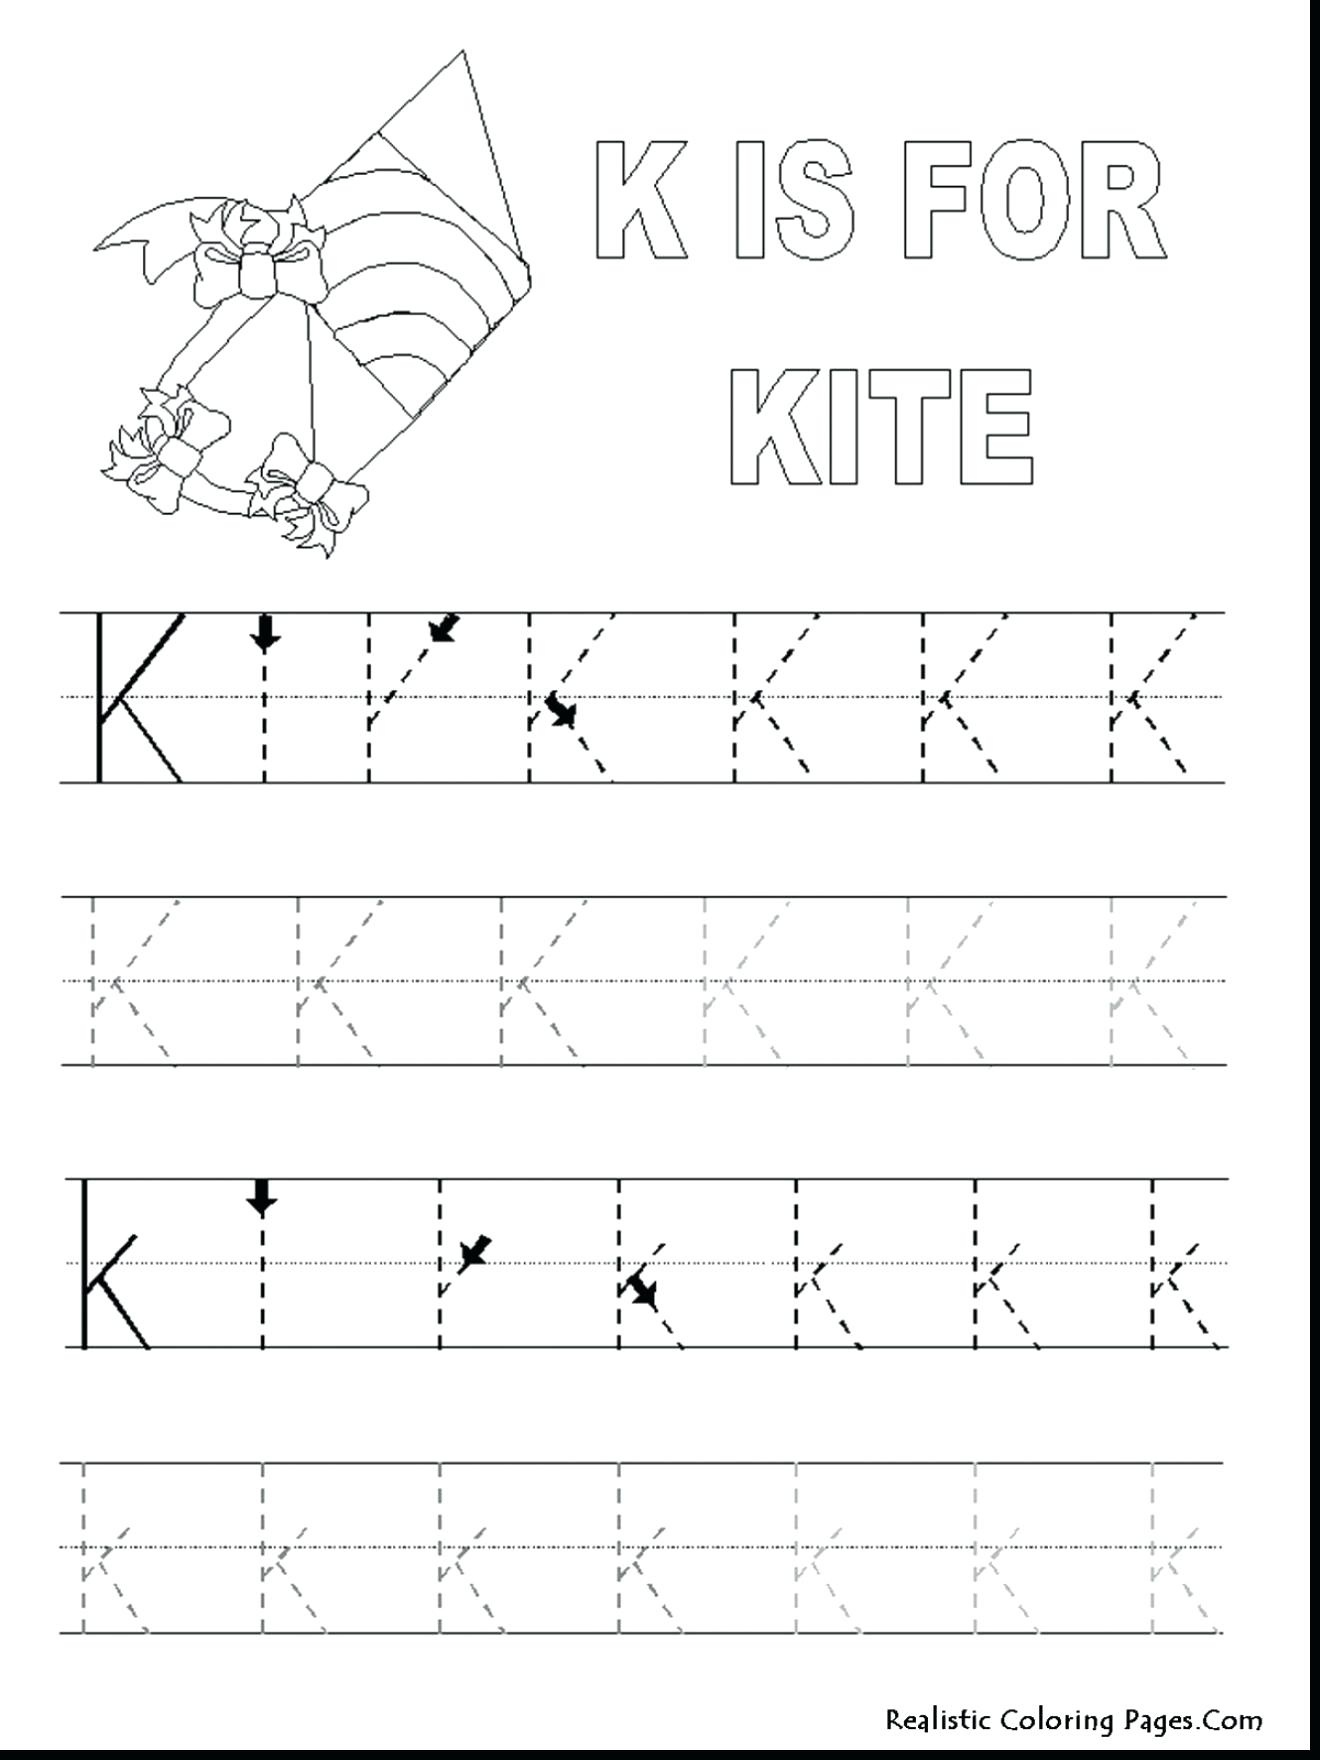 Free Printable Pre K Worksheets K Matching Worksheet Free Printable - Free Printable Preschool Worksheets Tracing Letters